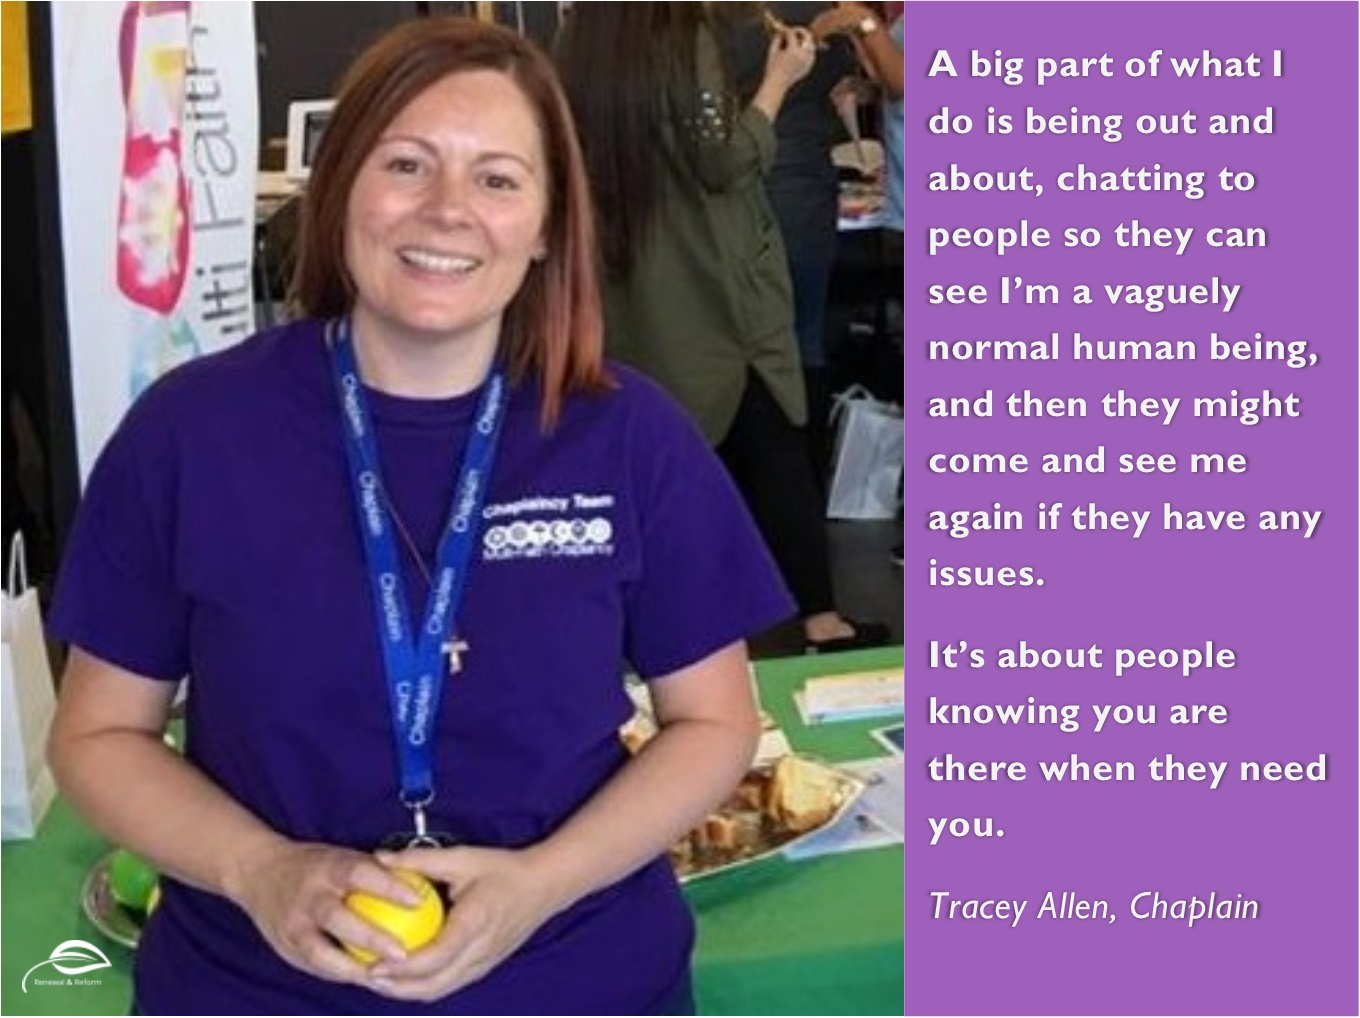 Tracey Allen. Chaplain. A big part of what I do is being out and about, chatting to people so they can see I'm a vaguely normal human being, and then they might come and see me again if they have any issues. It's about people knowing you are there when they need you.